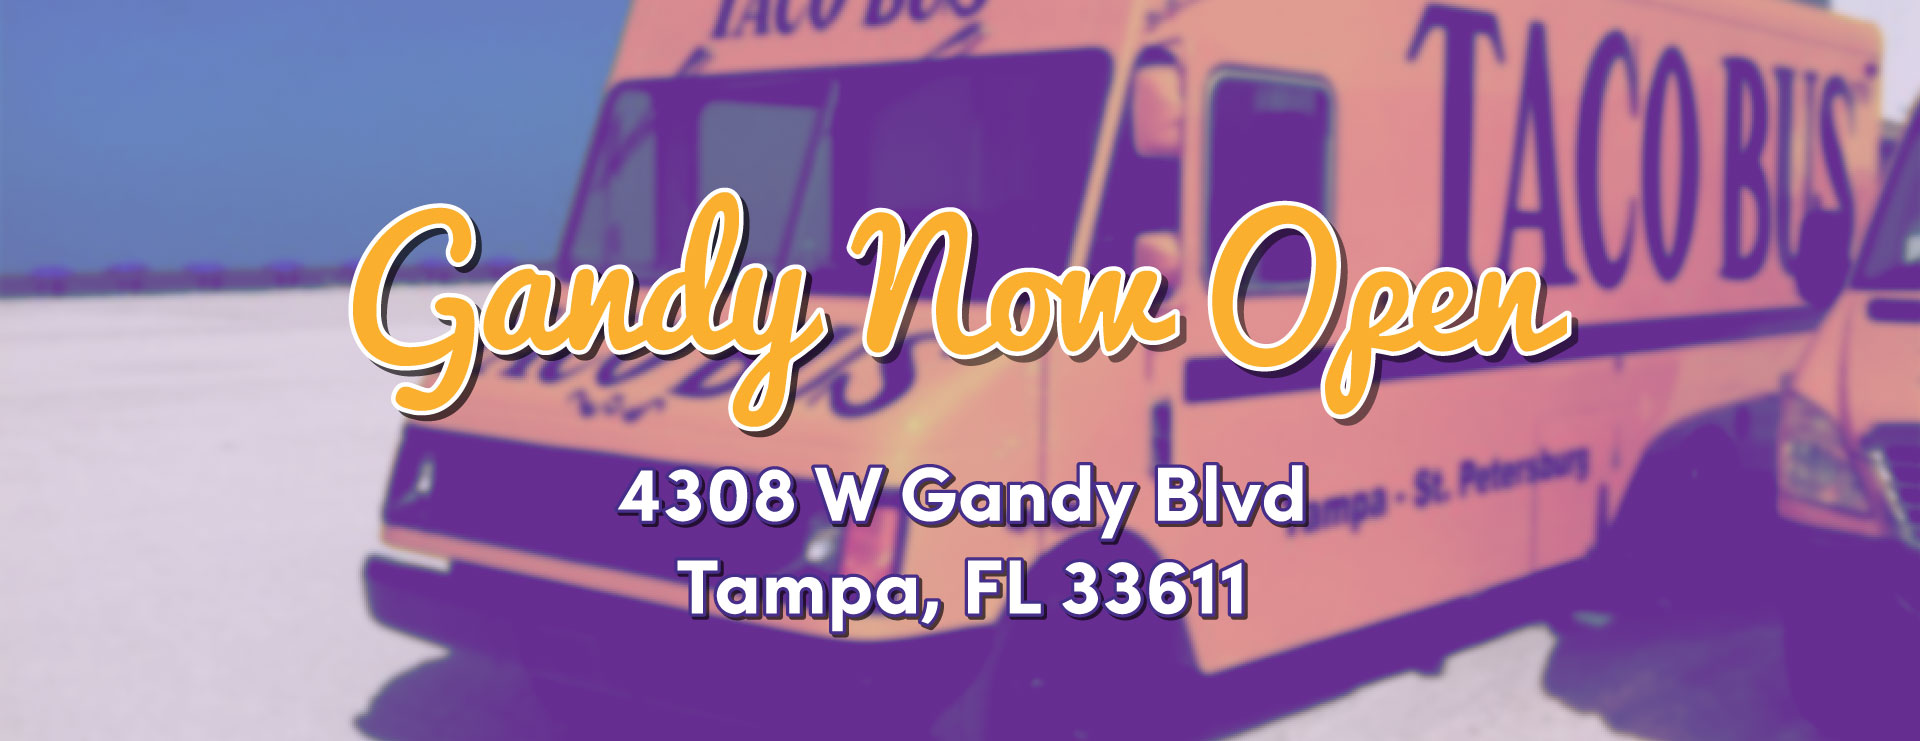 Gandy Location Now Open